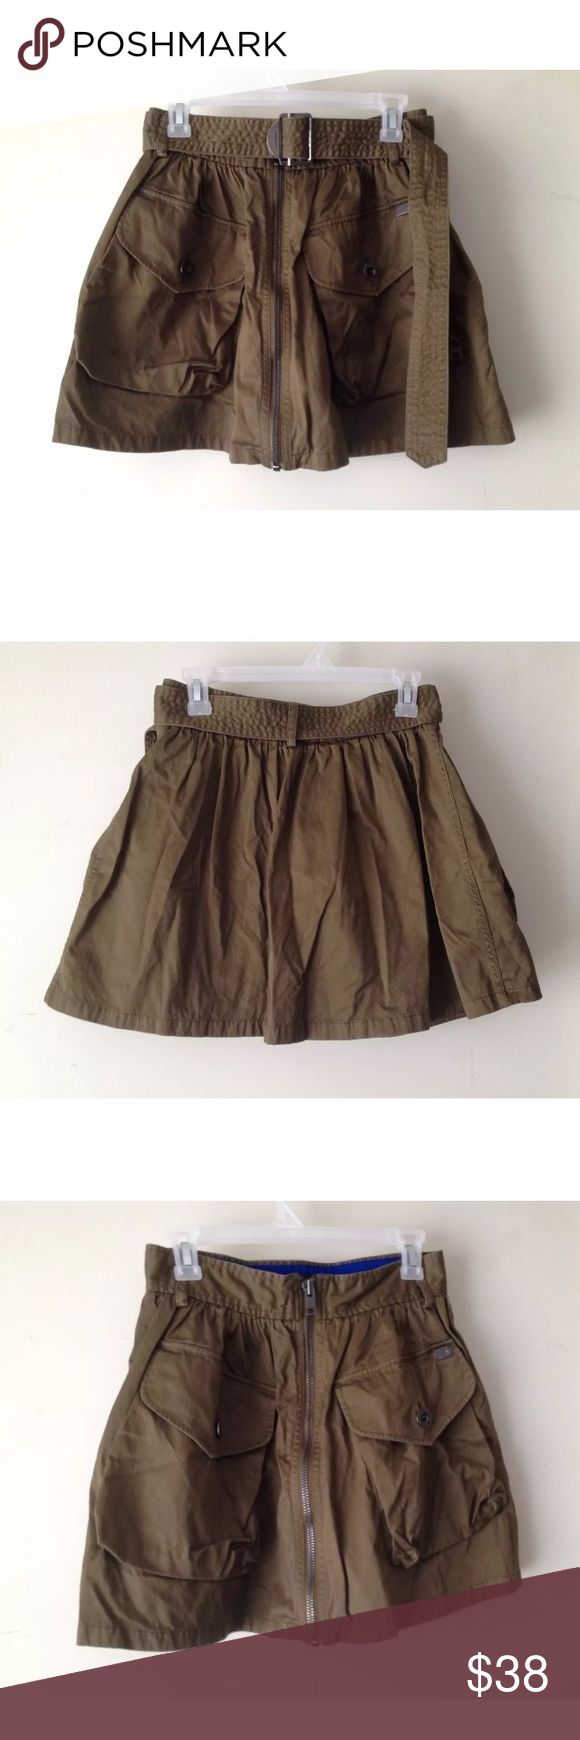 Diesel Olive 'O-Boden' Cargo Skirt, 29 Condition: regular wear and tear, no rips or stains, good condition Color: Olive Green (color doesn't show up so well in photos) Size: 29  Lightweight A-line mini skirt sports a military-inspired look. Belt-loops throughout waist with detachable pull belt. Gathering at waistline. Large cargo pockets at front with button-flaps. Full zip-front closure.  Waist ~ 28 inches Length ~ 16 inches Diesel Skirts Mini